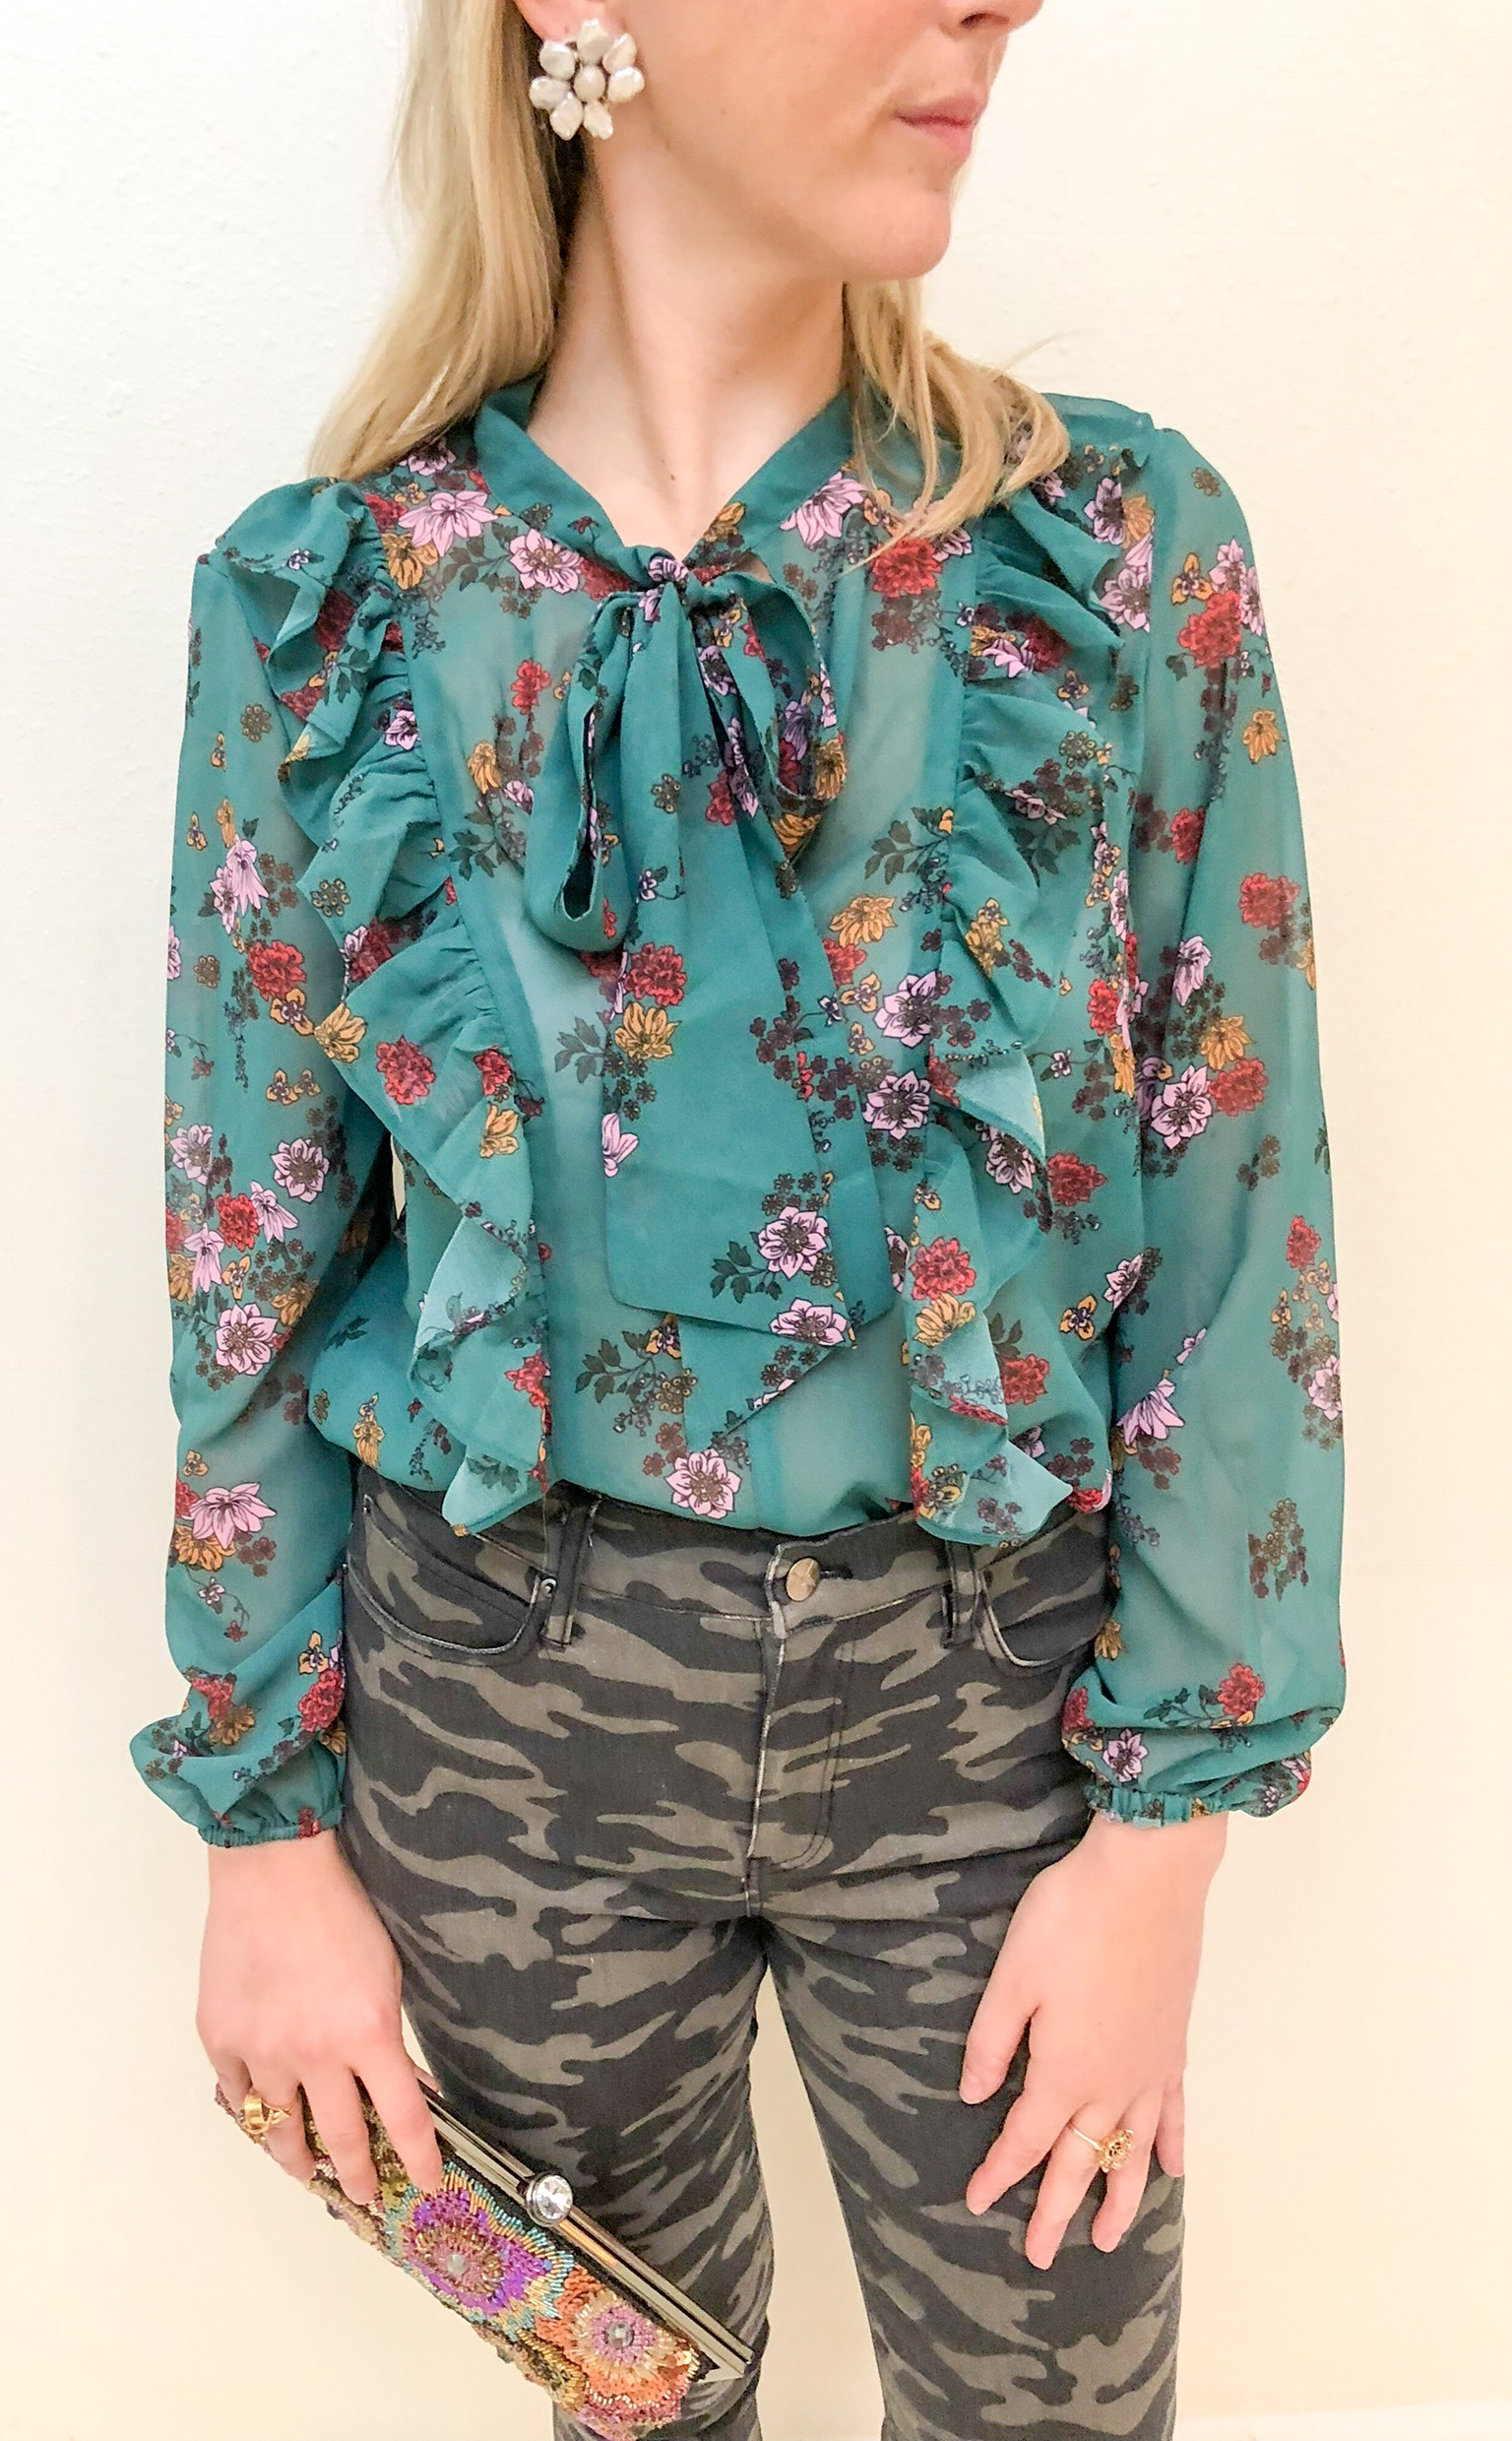 First Look: - First Look: Emerald is one of the season's hottest colors. Pair this floral bow neck blouse with a more neutral camo denim for a sweet and sporty look.